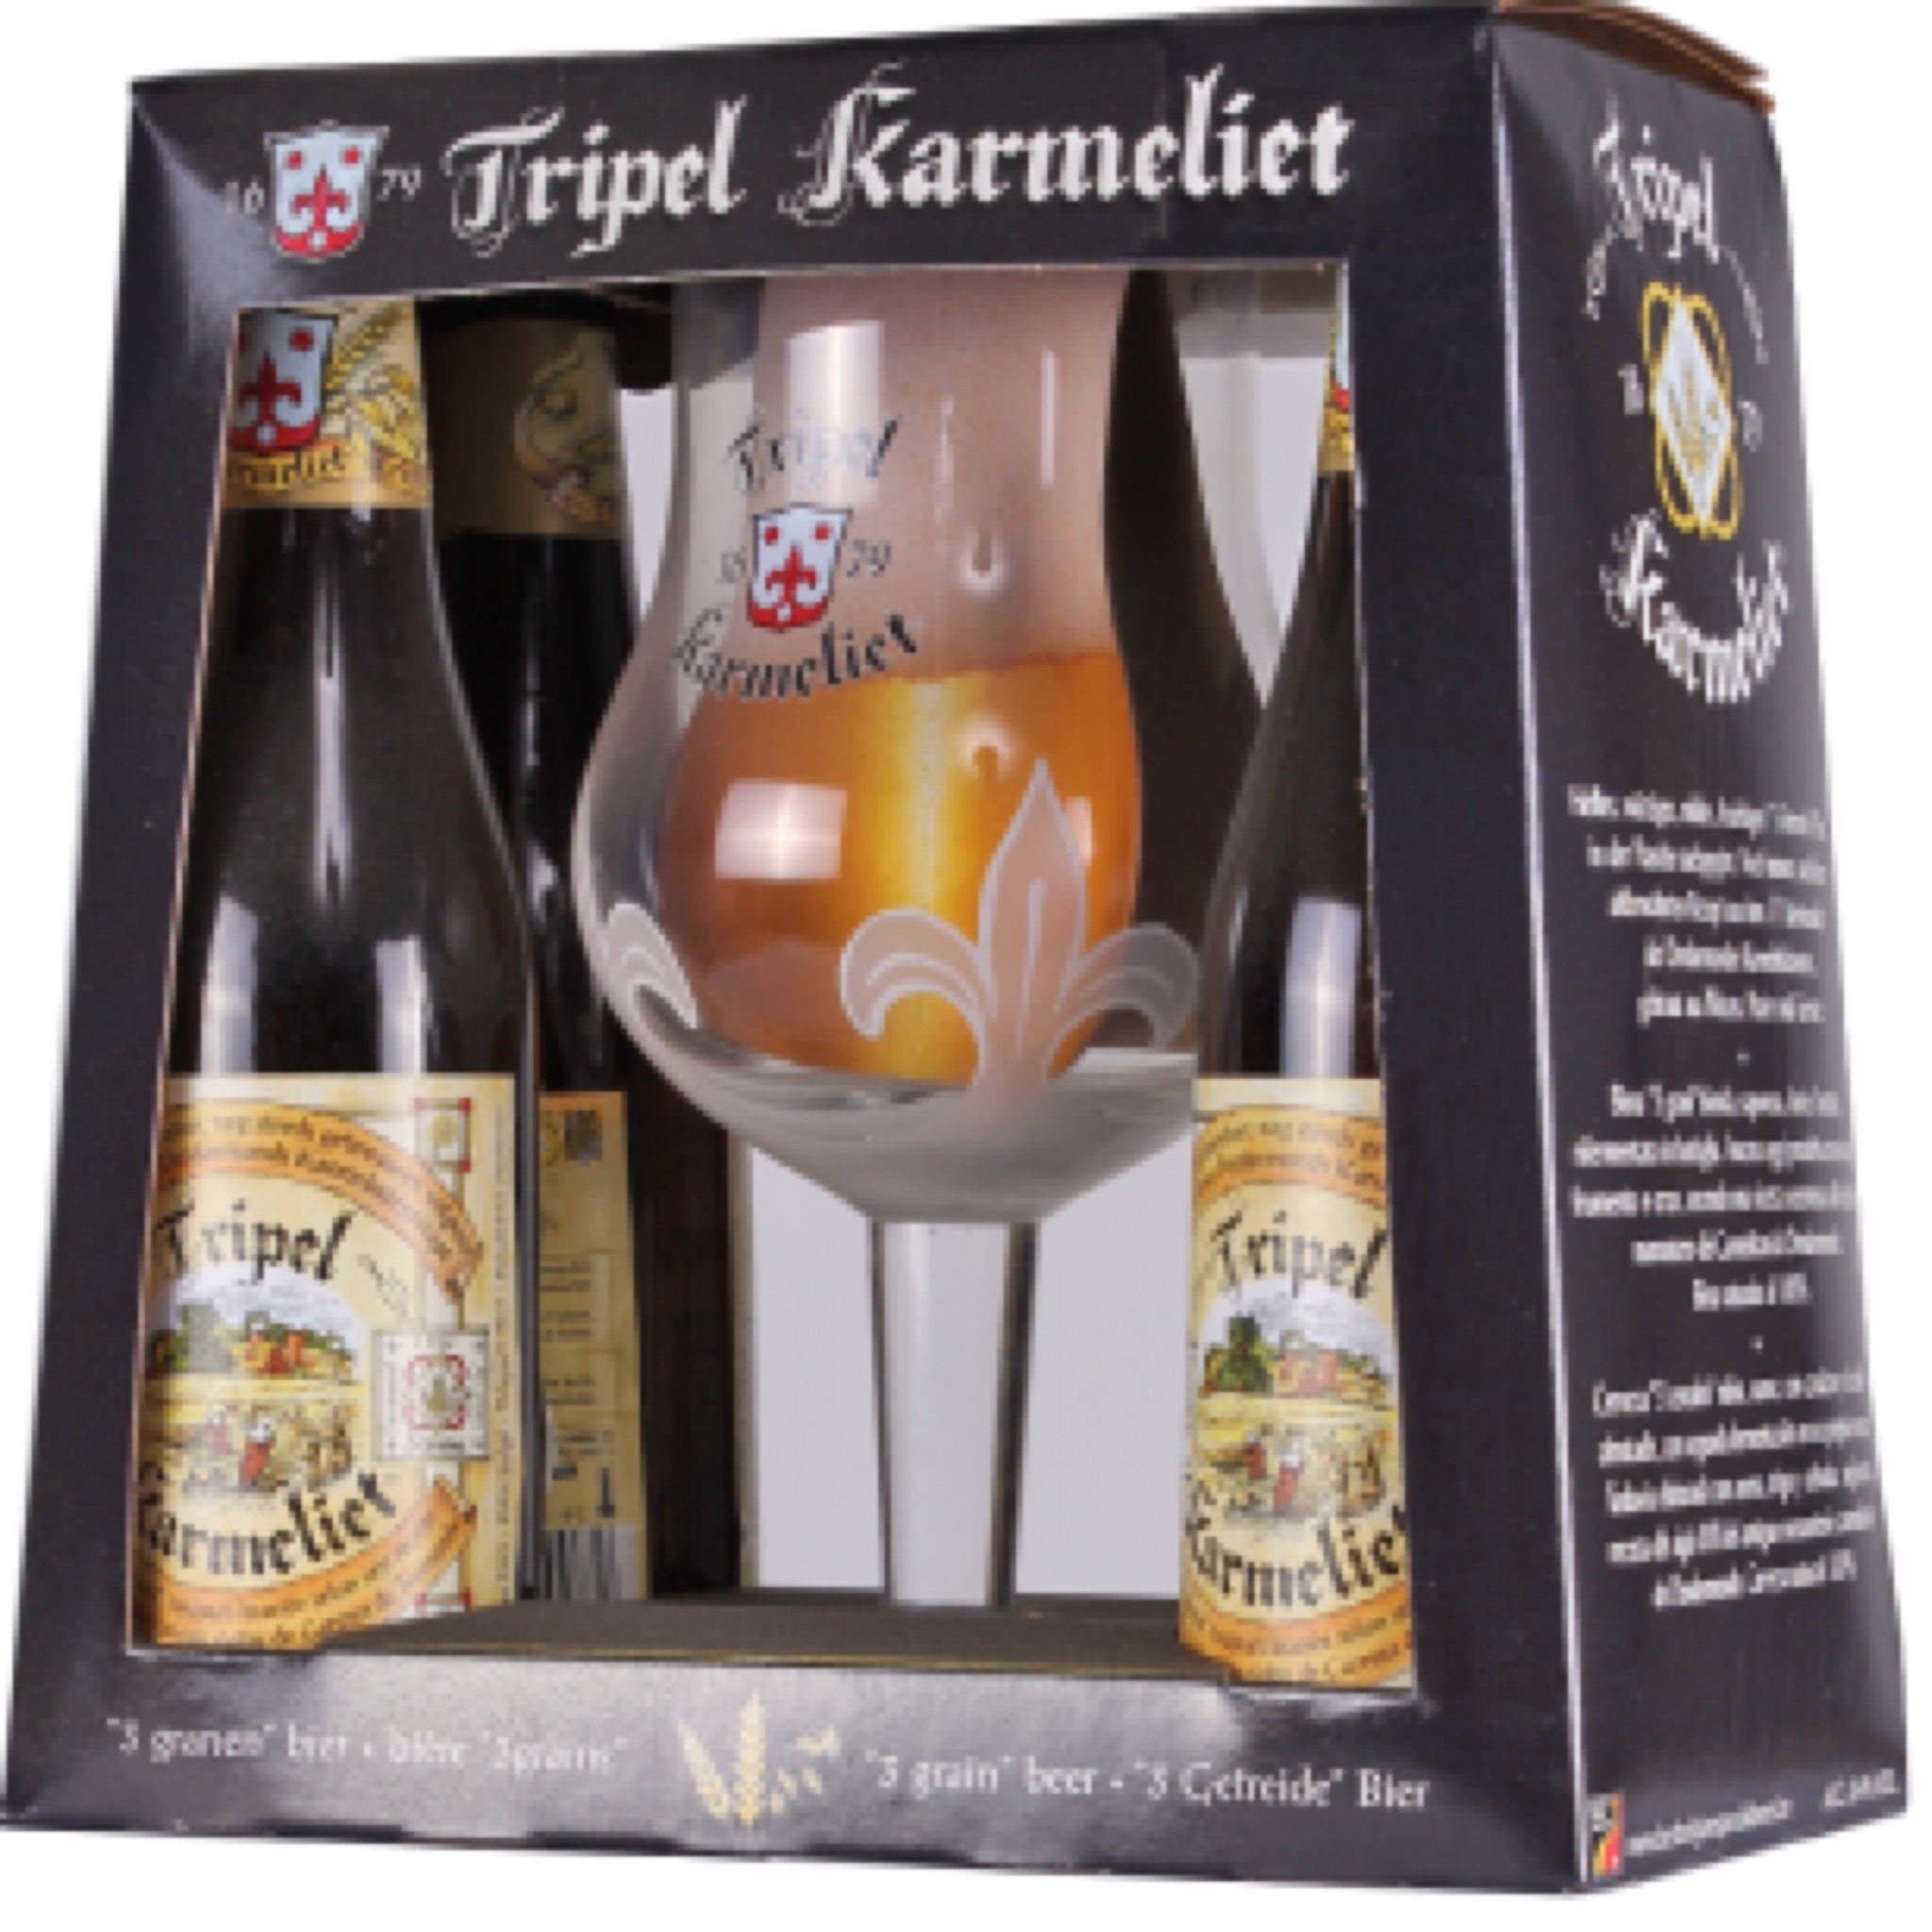 Tripel Karmeliet Gift Pack 4x330ml + 1 Glass